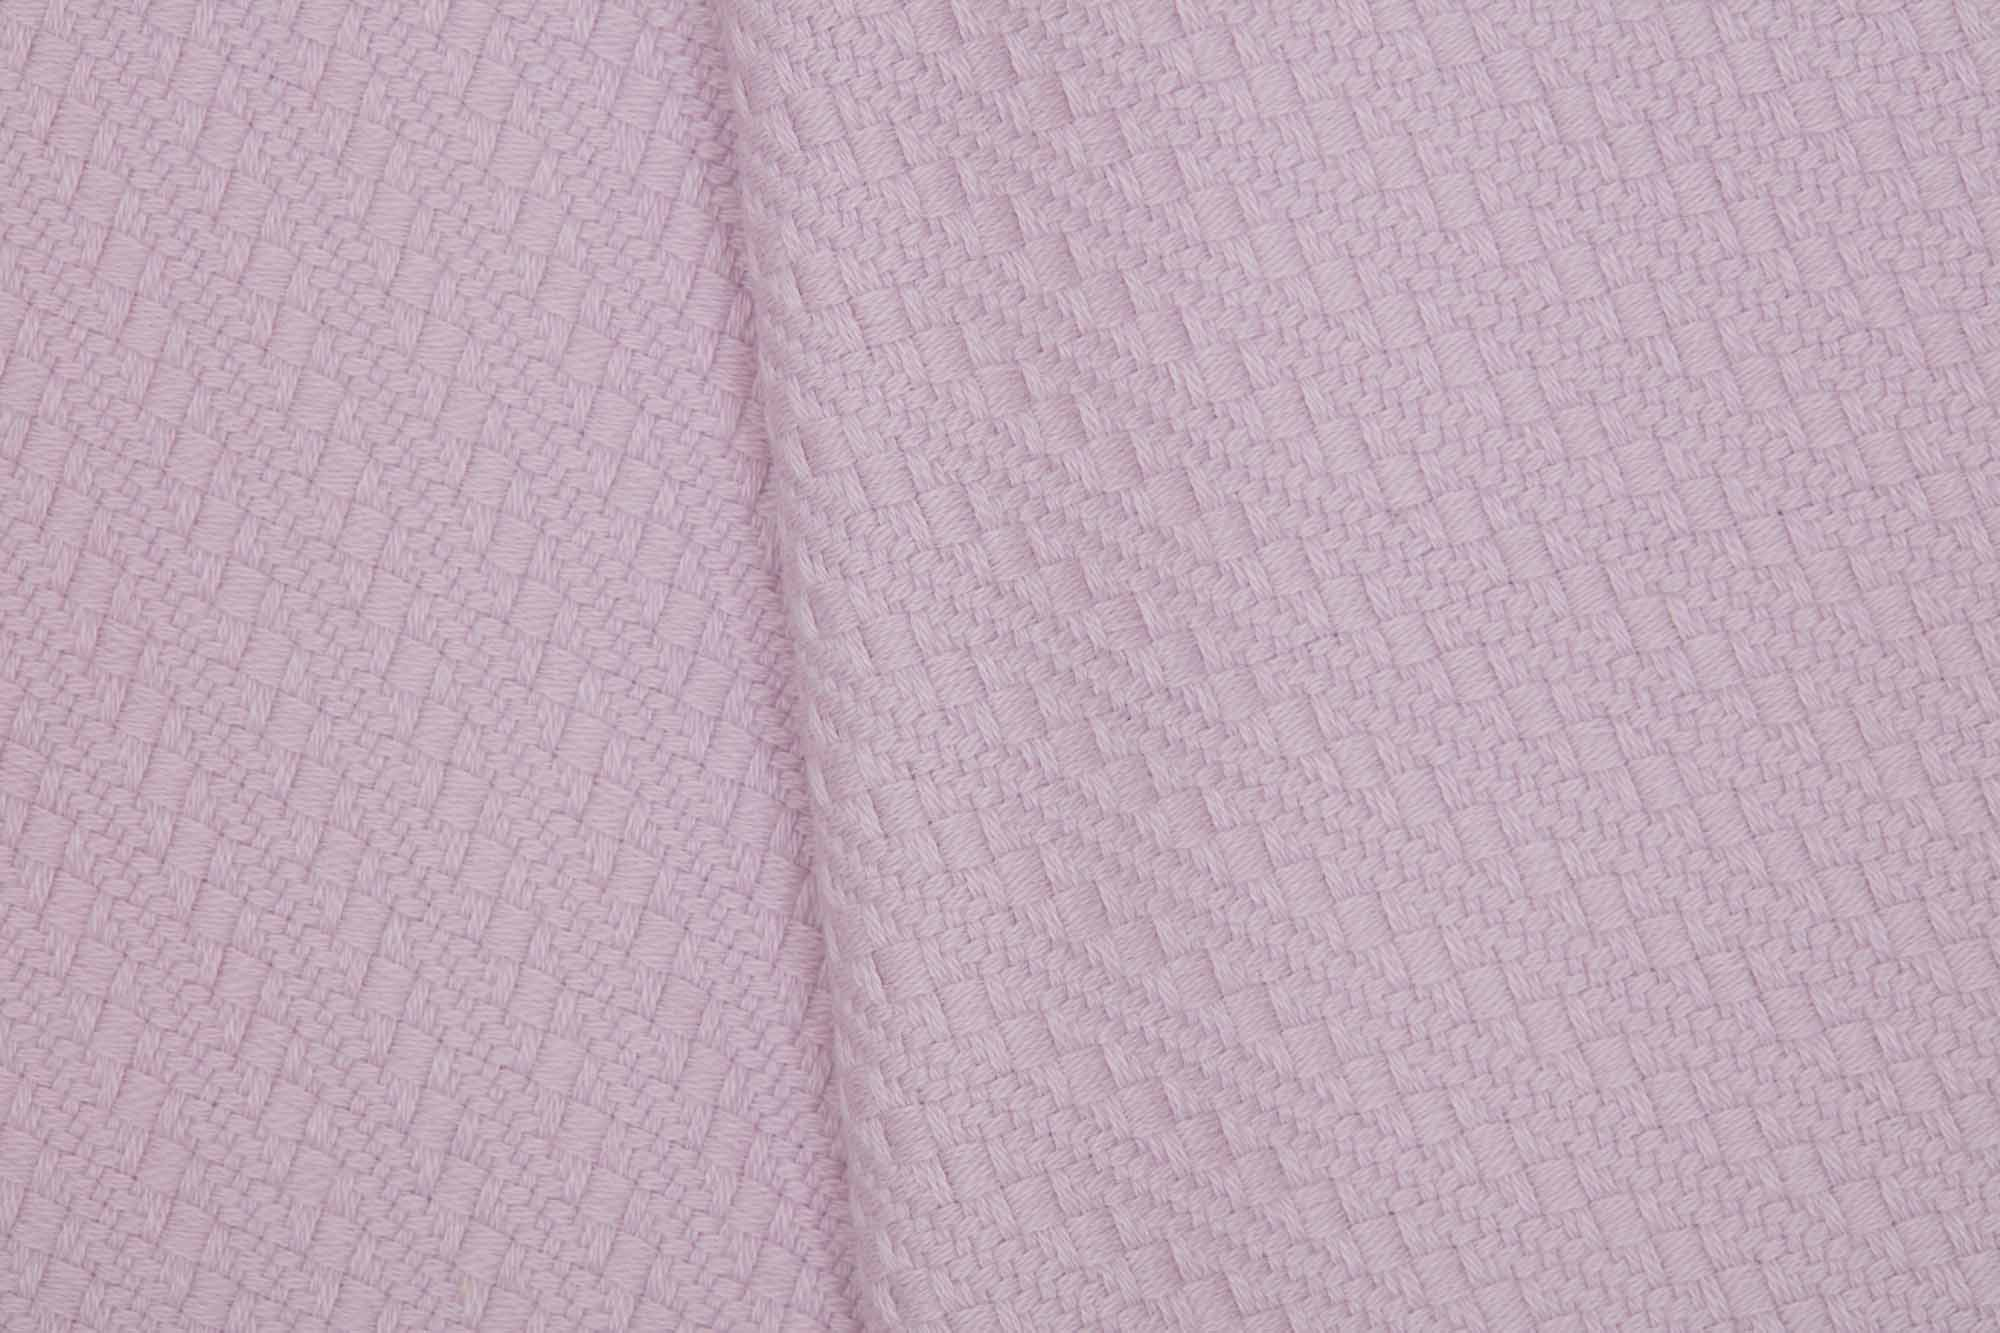 Lilac-Baby-Blanket-48x36-image-5